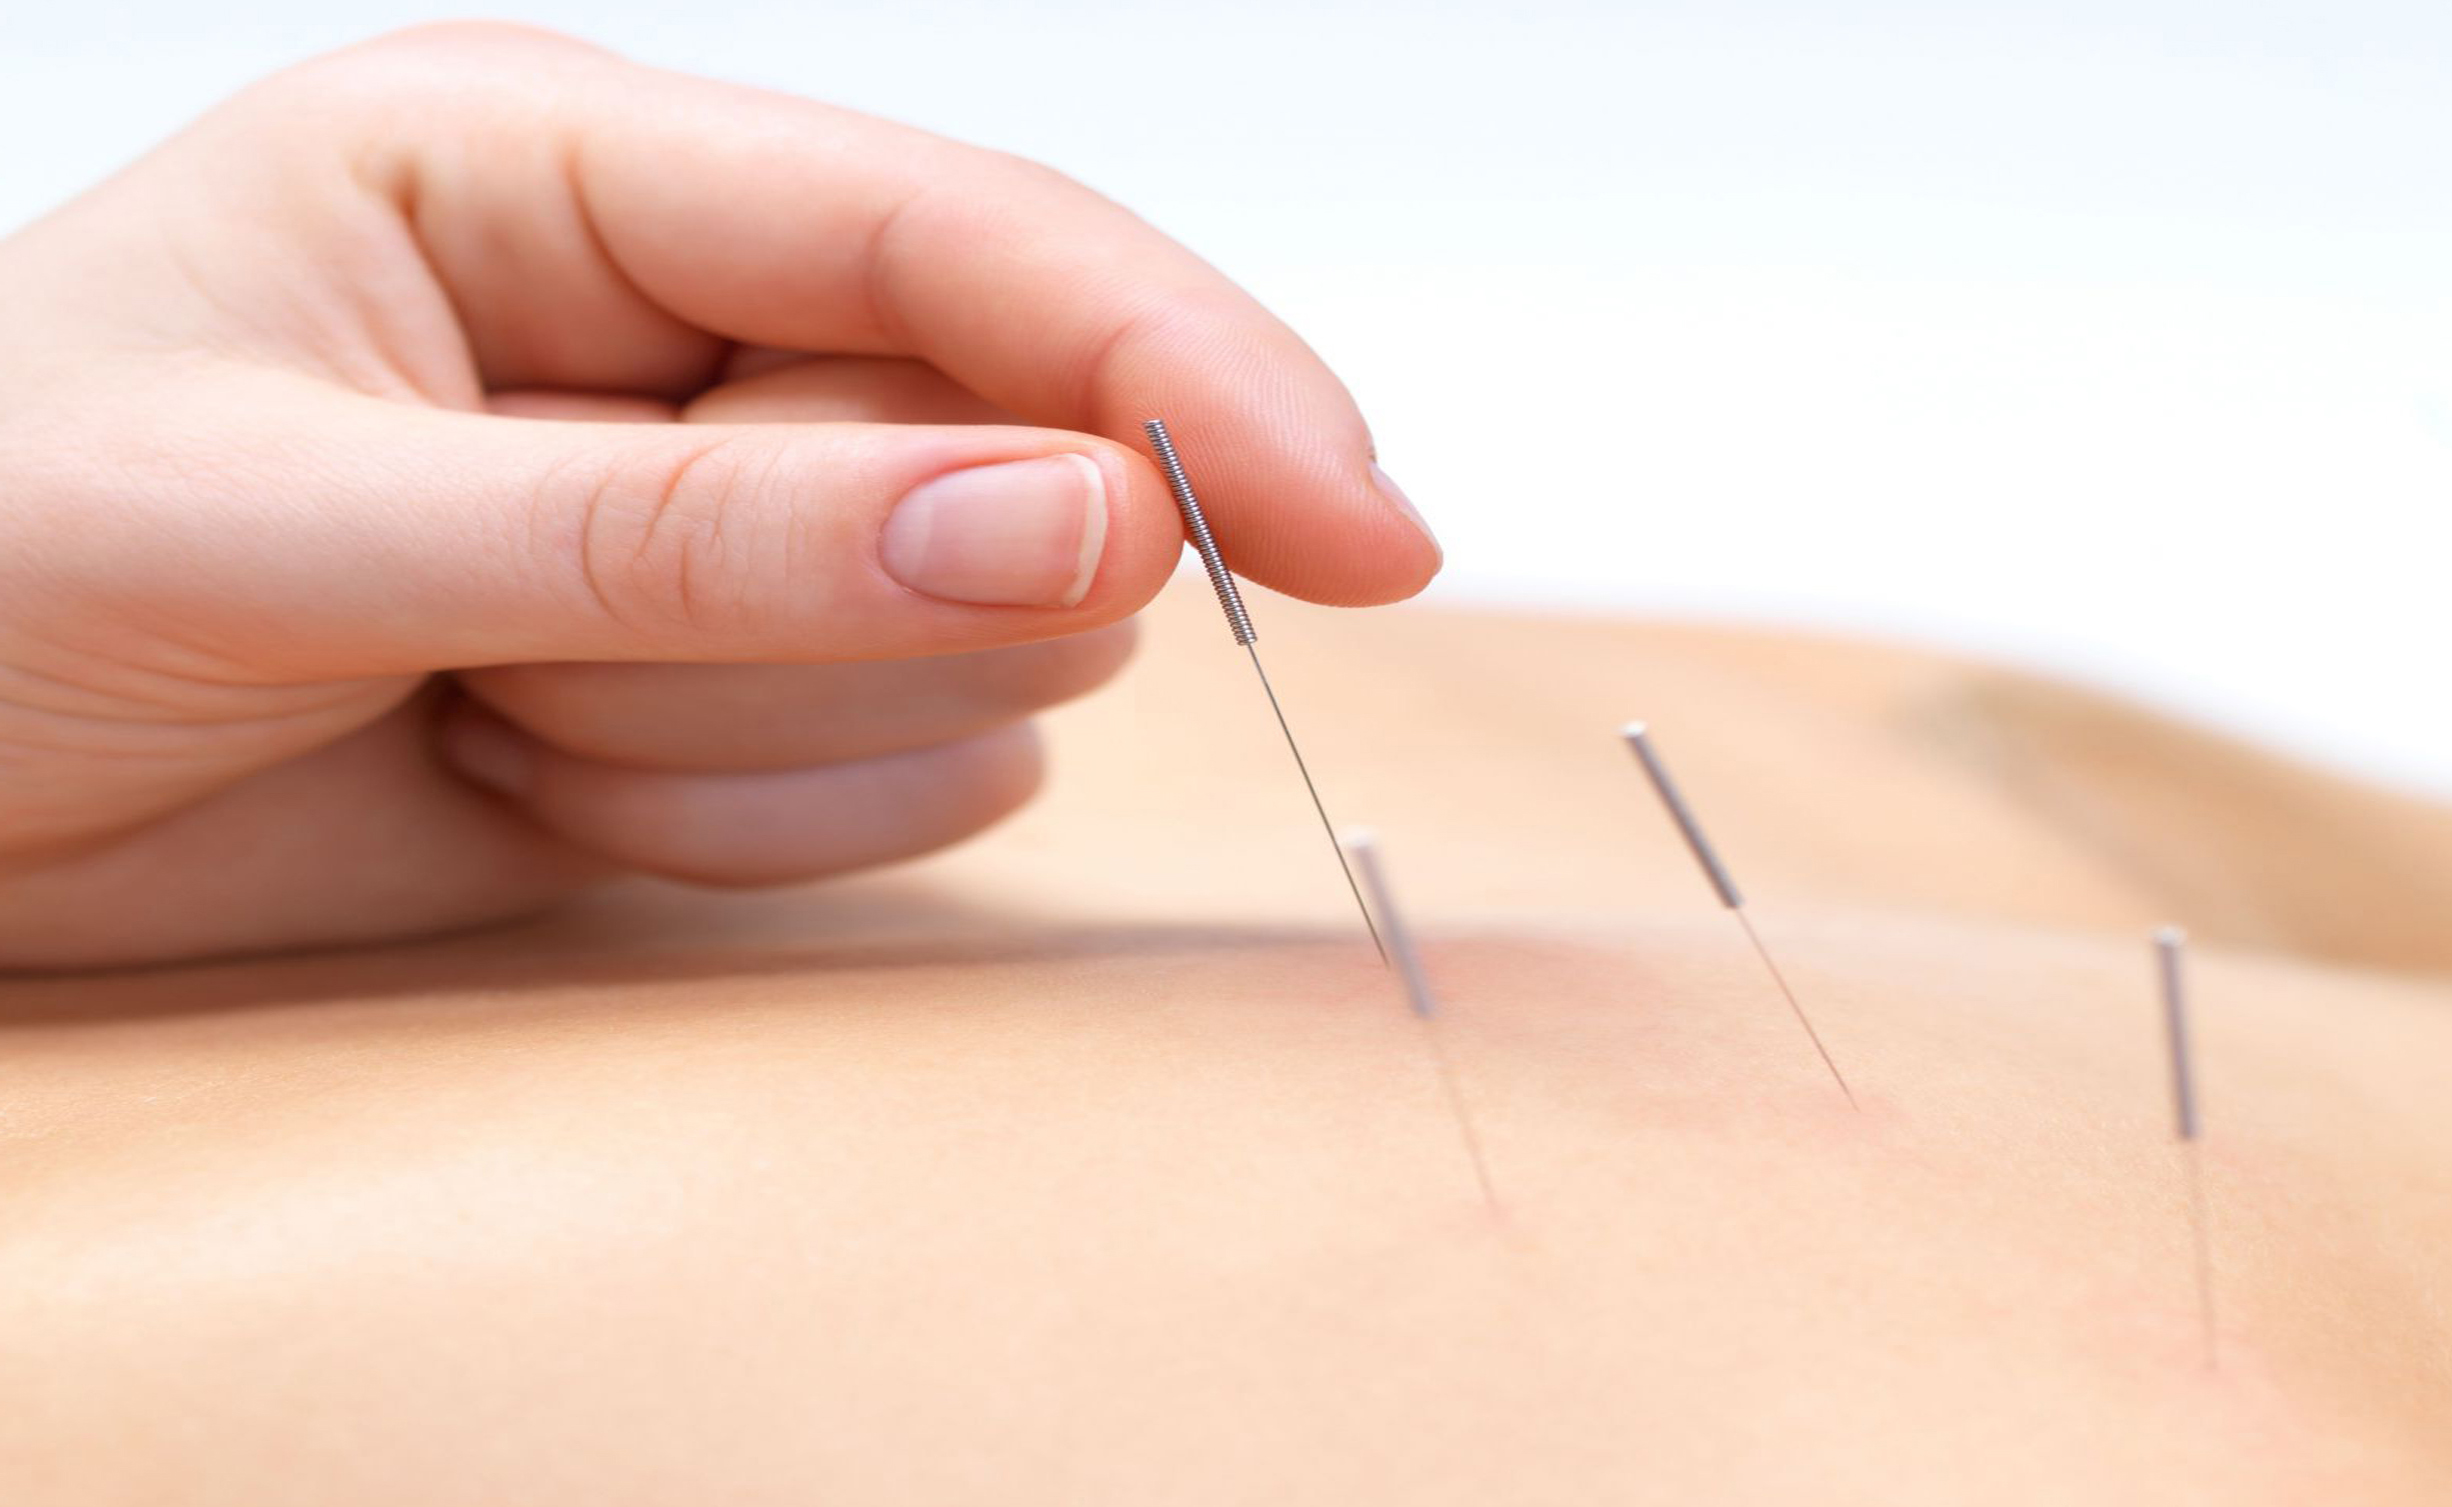 acupuncture as a good option to alternative healing Alternative medicine and your health on everything from fish oil supplements to acupuncture plan with alternative healthcare options.